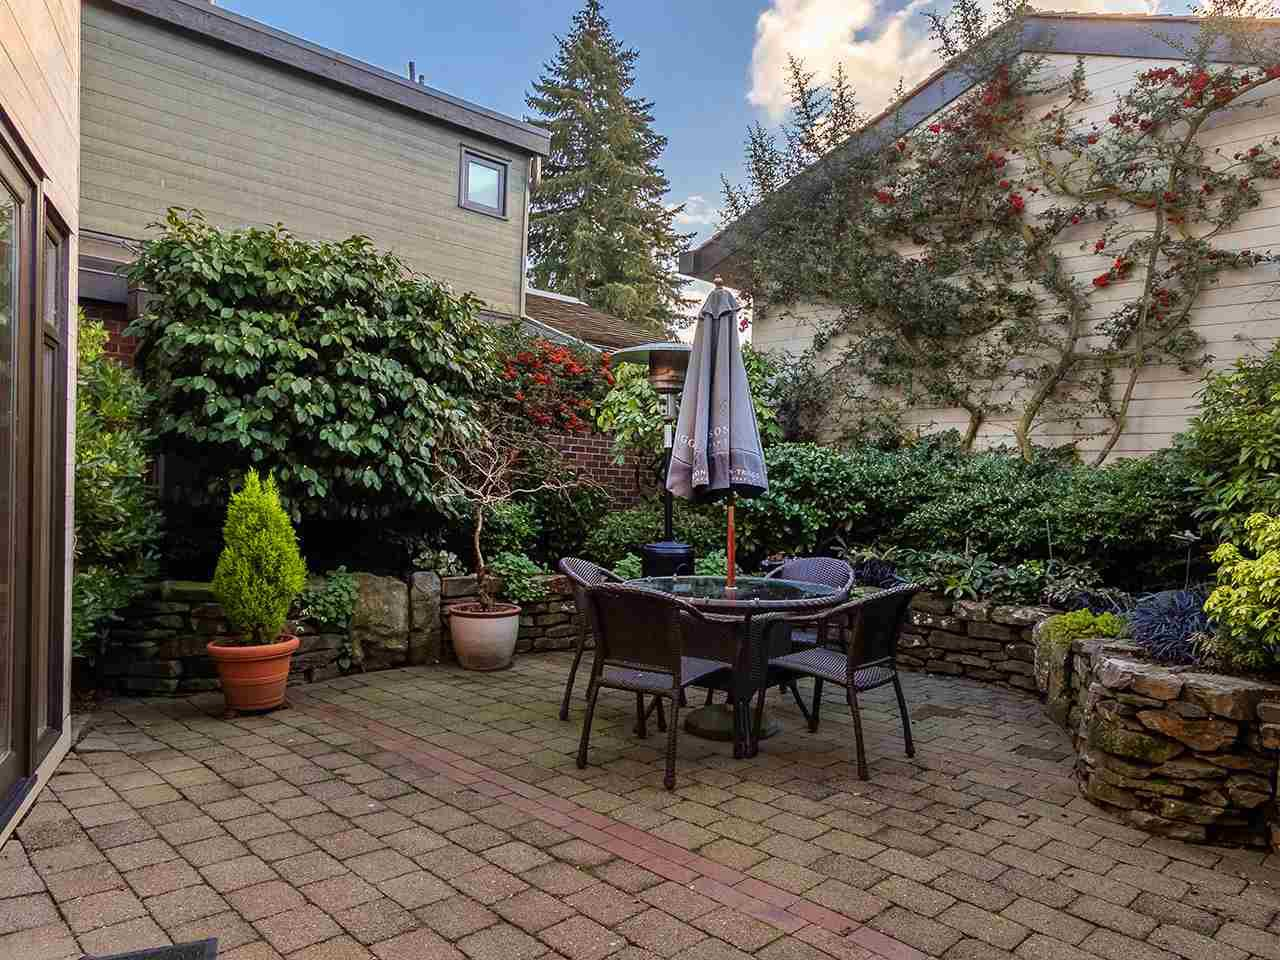 Photo 13: Photos: 2 1980 SASAMAT STREET in Vancouver: Point Grey Townhouse for sale (Vancouver West)  : MLS®# R2357115